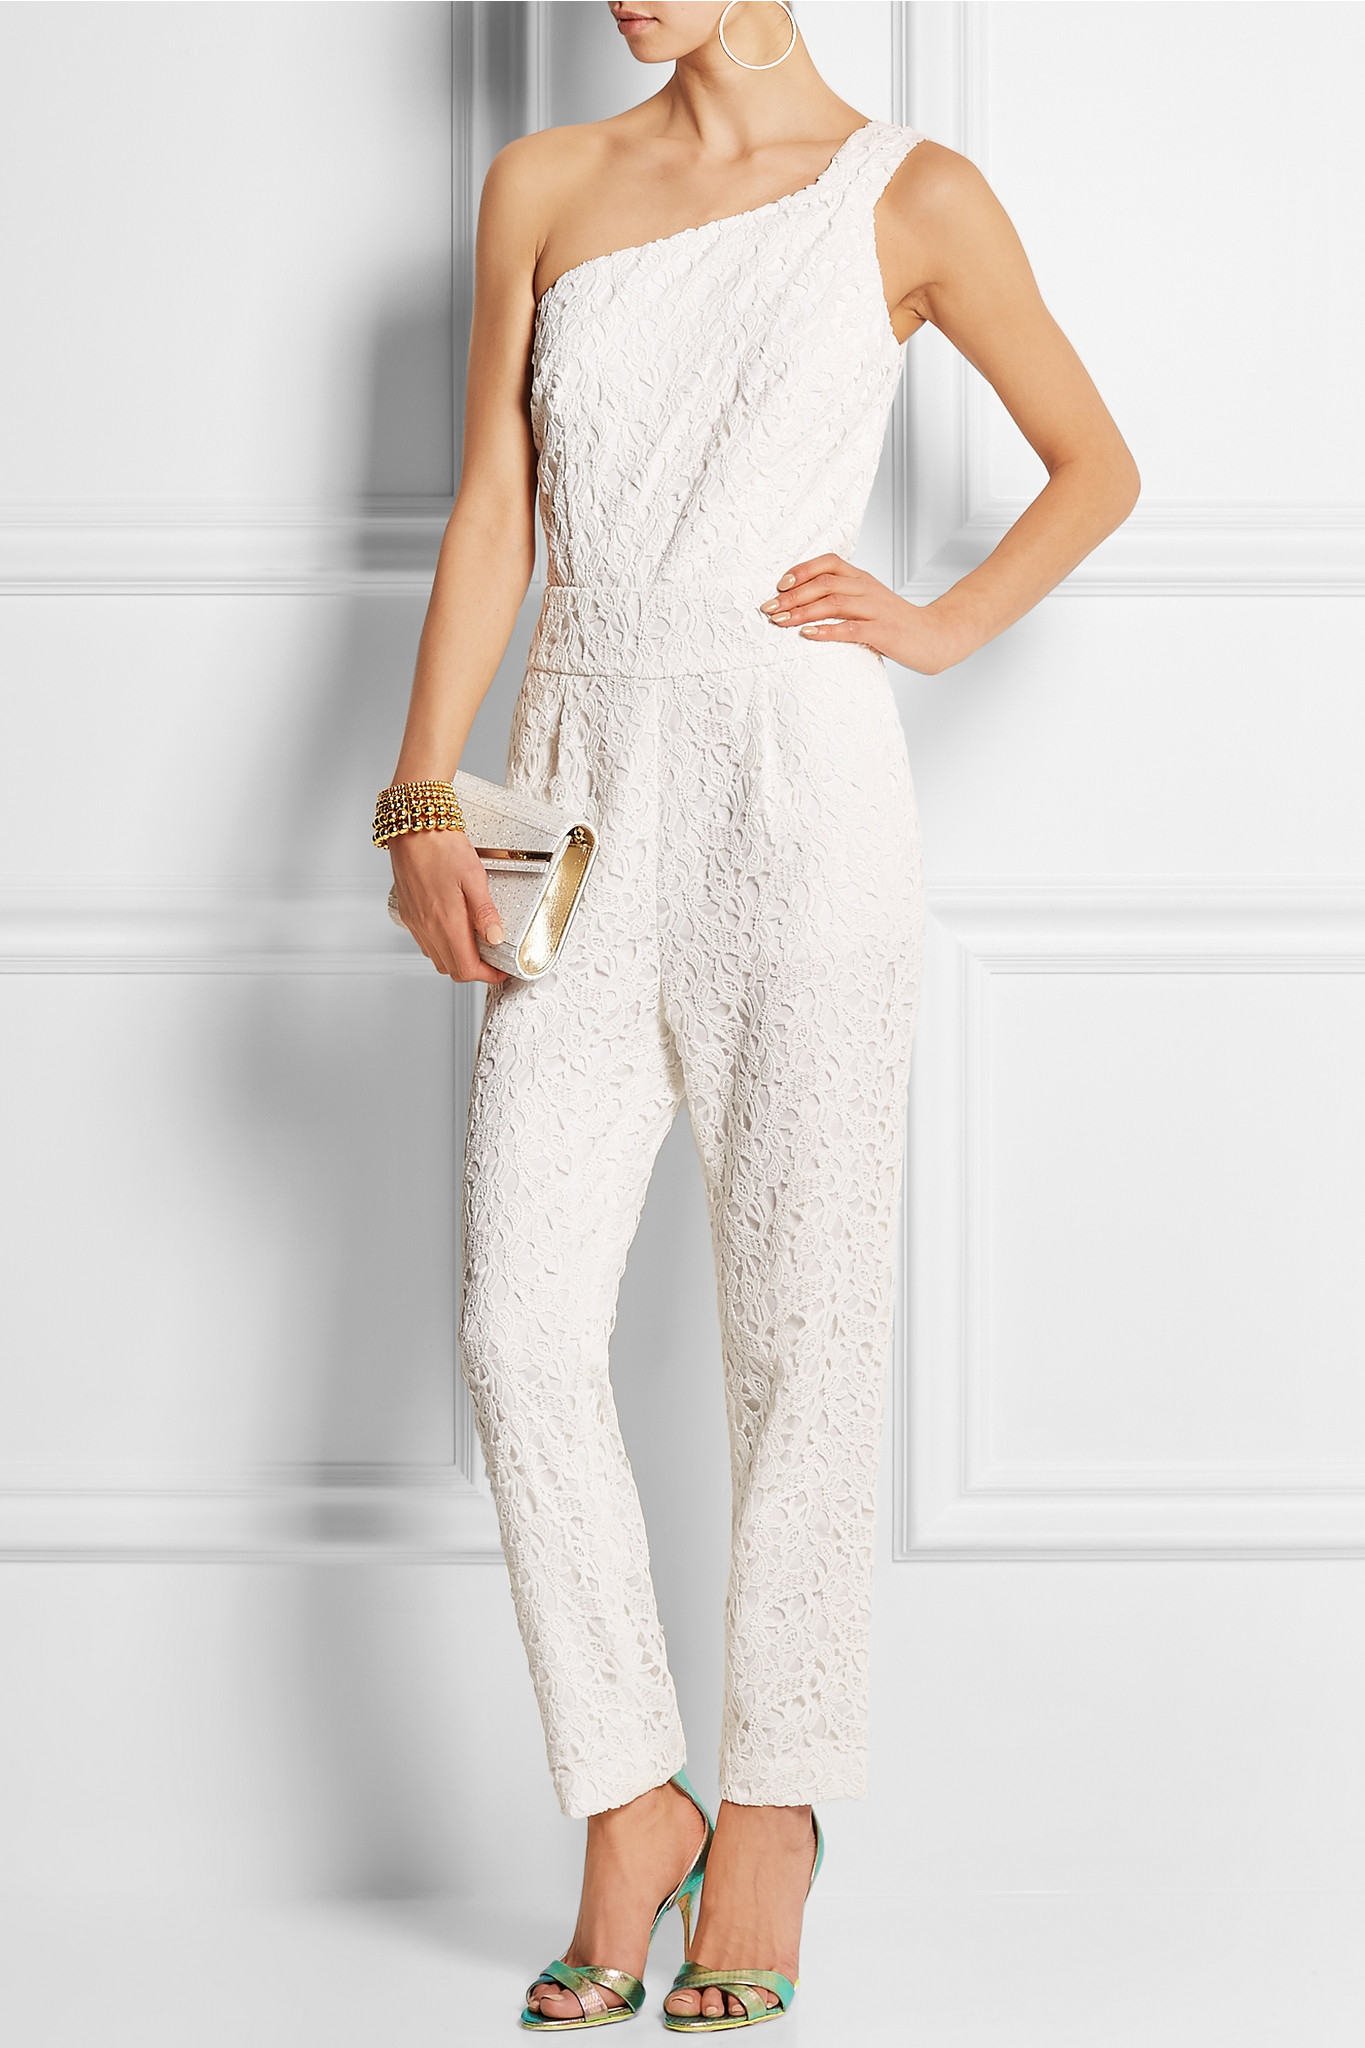 3a0a355bc9db J.Crew Nia Bridal One-shoulder Floral-lace Jumpsuit in White - Lyst